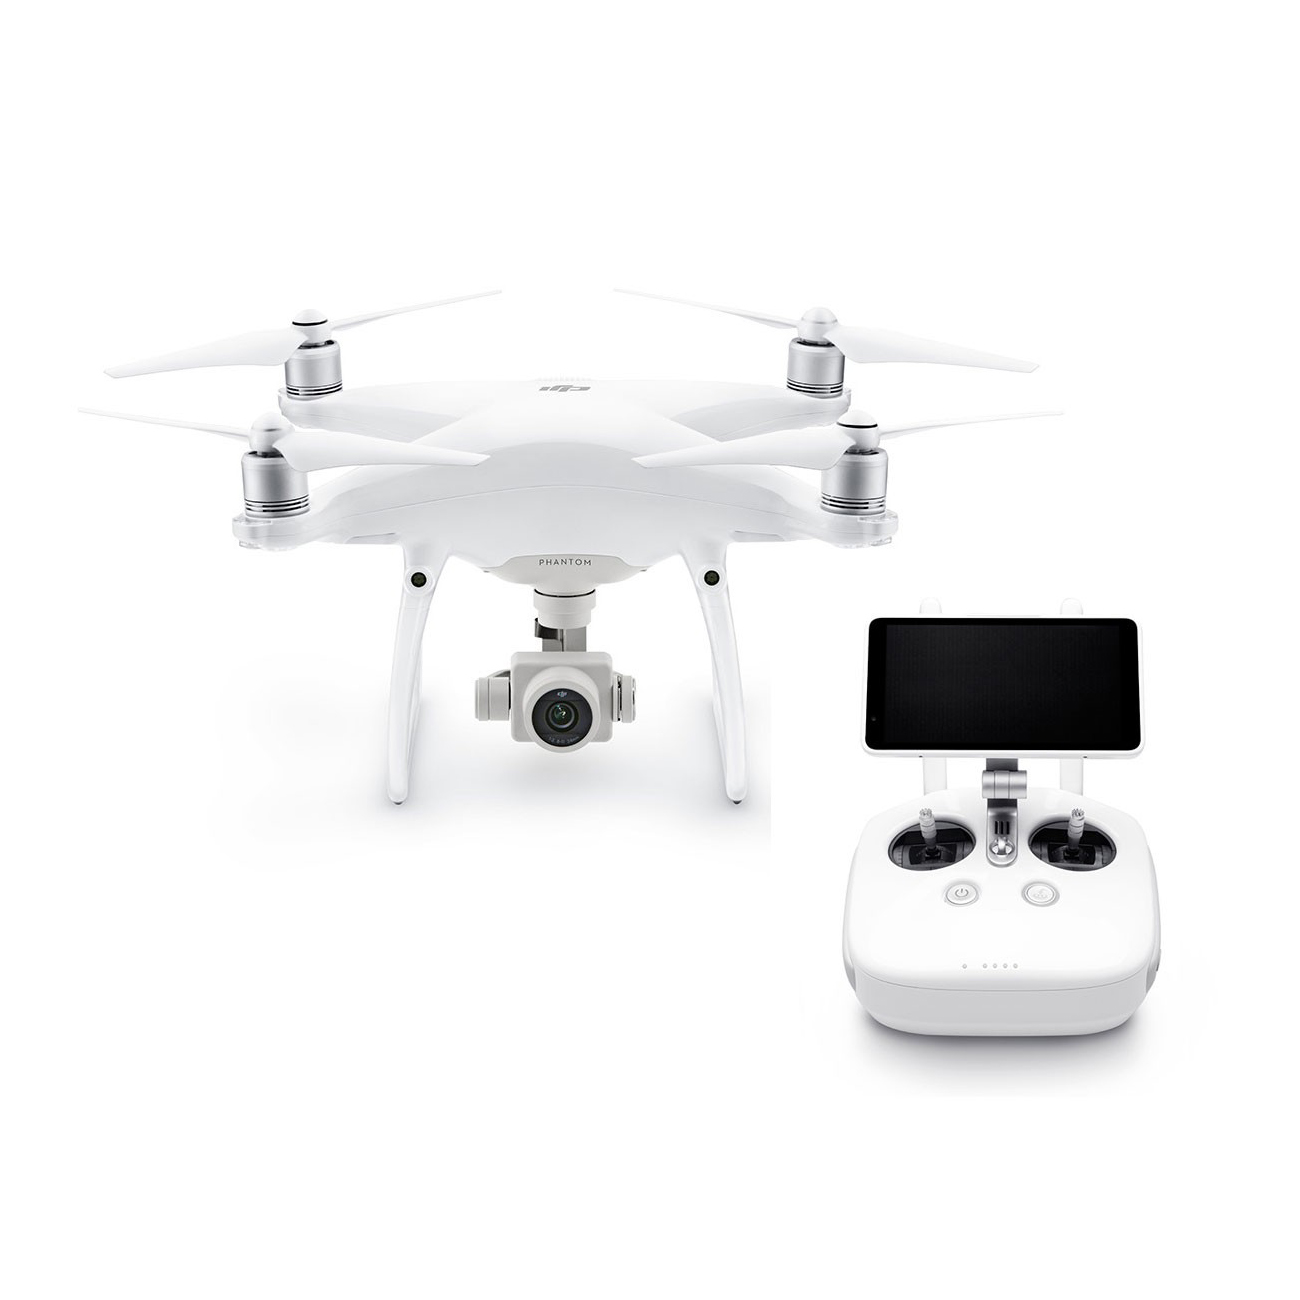 Drone24 DJI Phantom 4 Advanced+